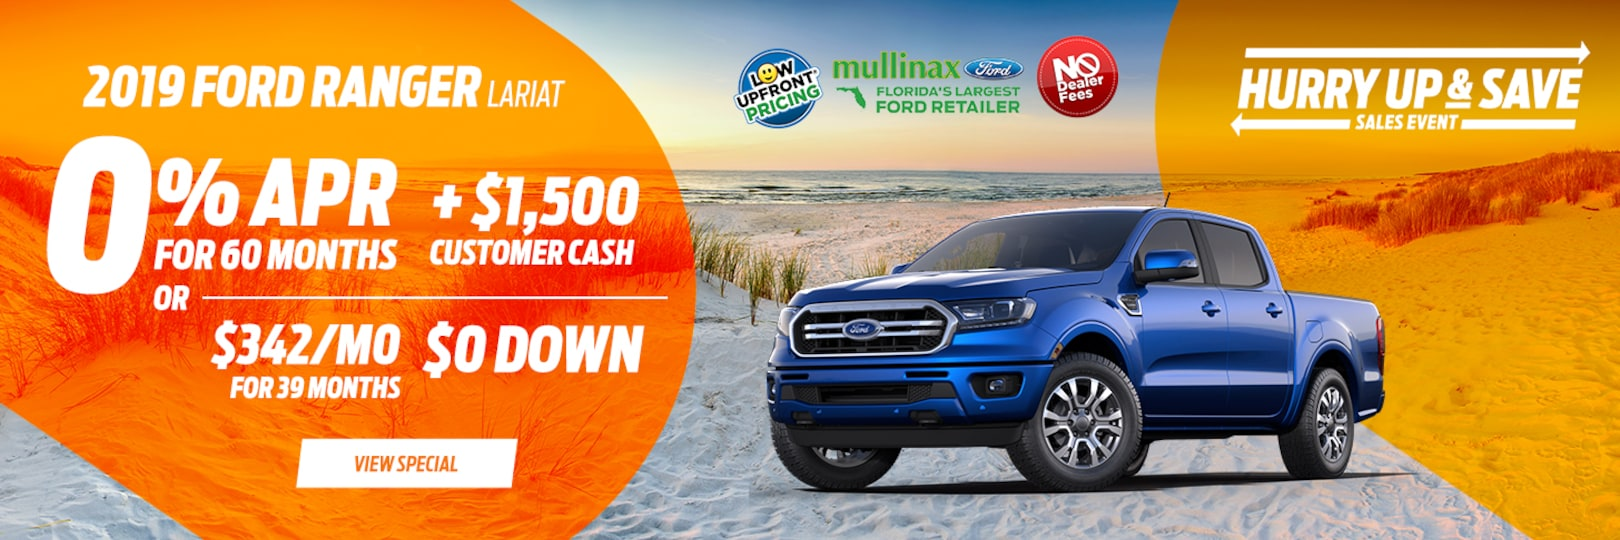 Car Dealers With No Dealer Fees >> Mullinax Ford Of Kissimmee Ford Dealership Near Orlando Fl